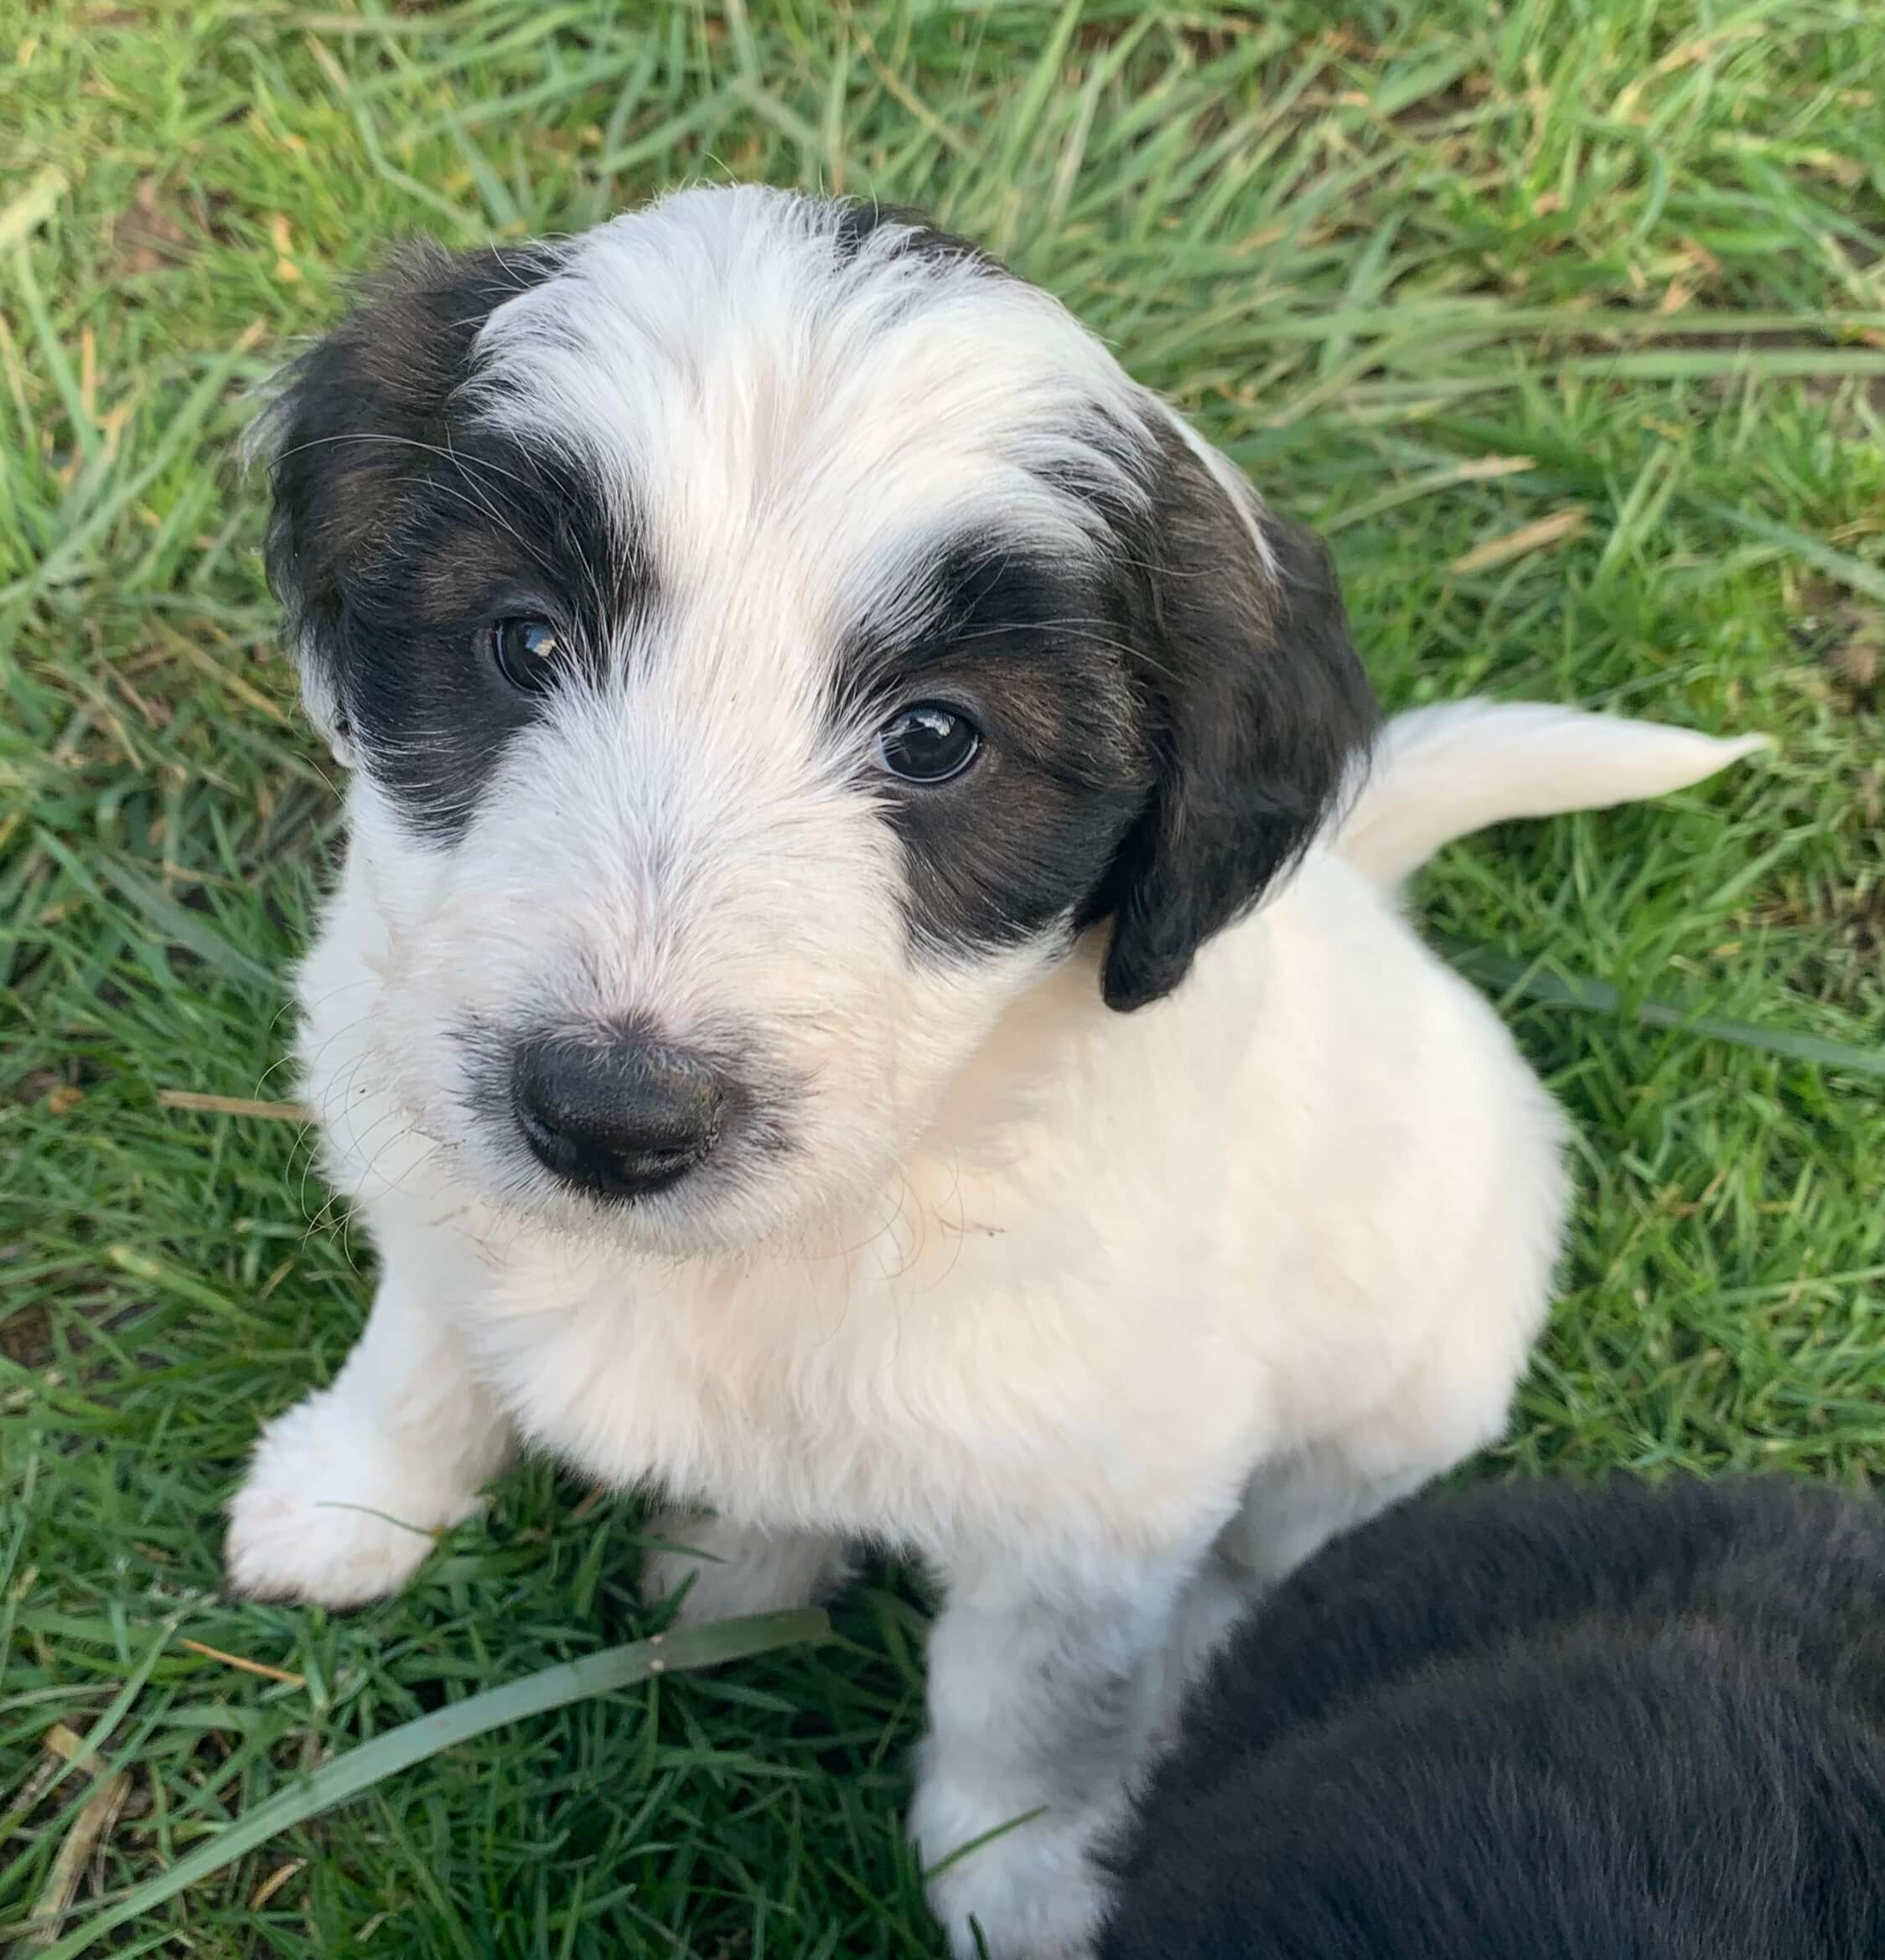 Bodoodle puppy for sale - Bonnie